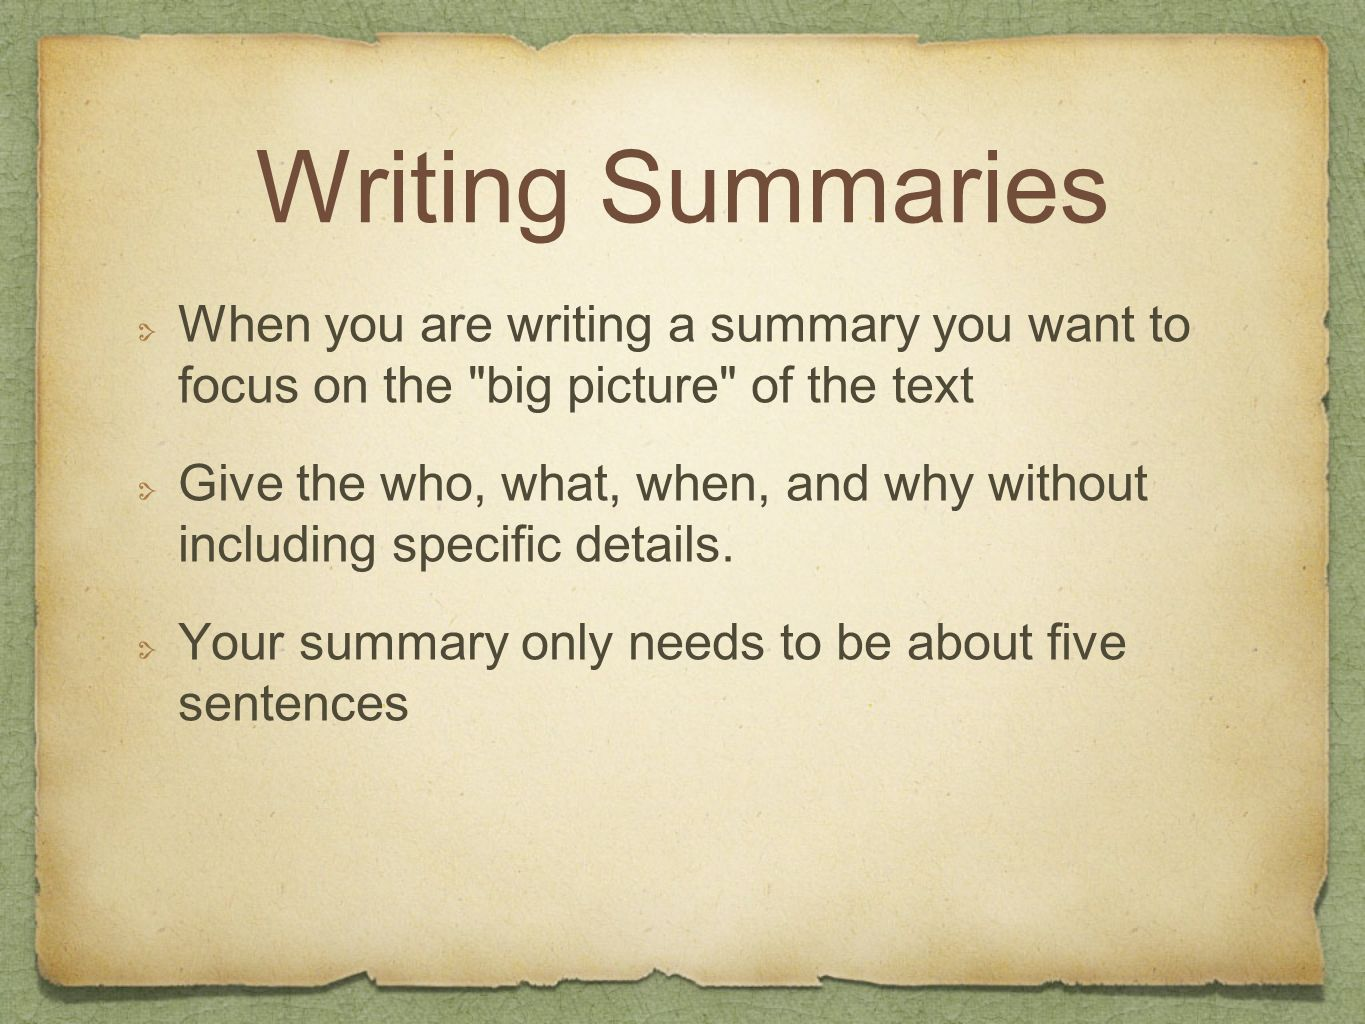 Writing Summaries When you are writing a summary you want to focus on the big picture of the text.